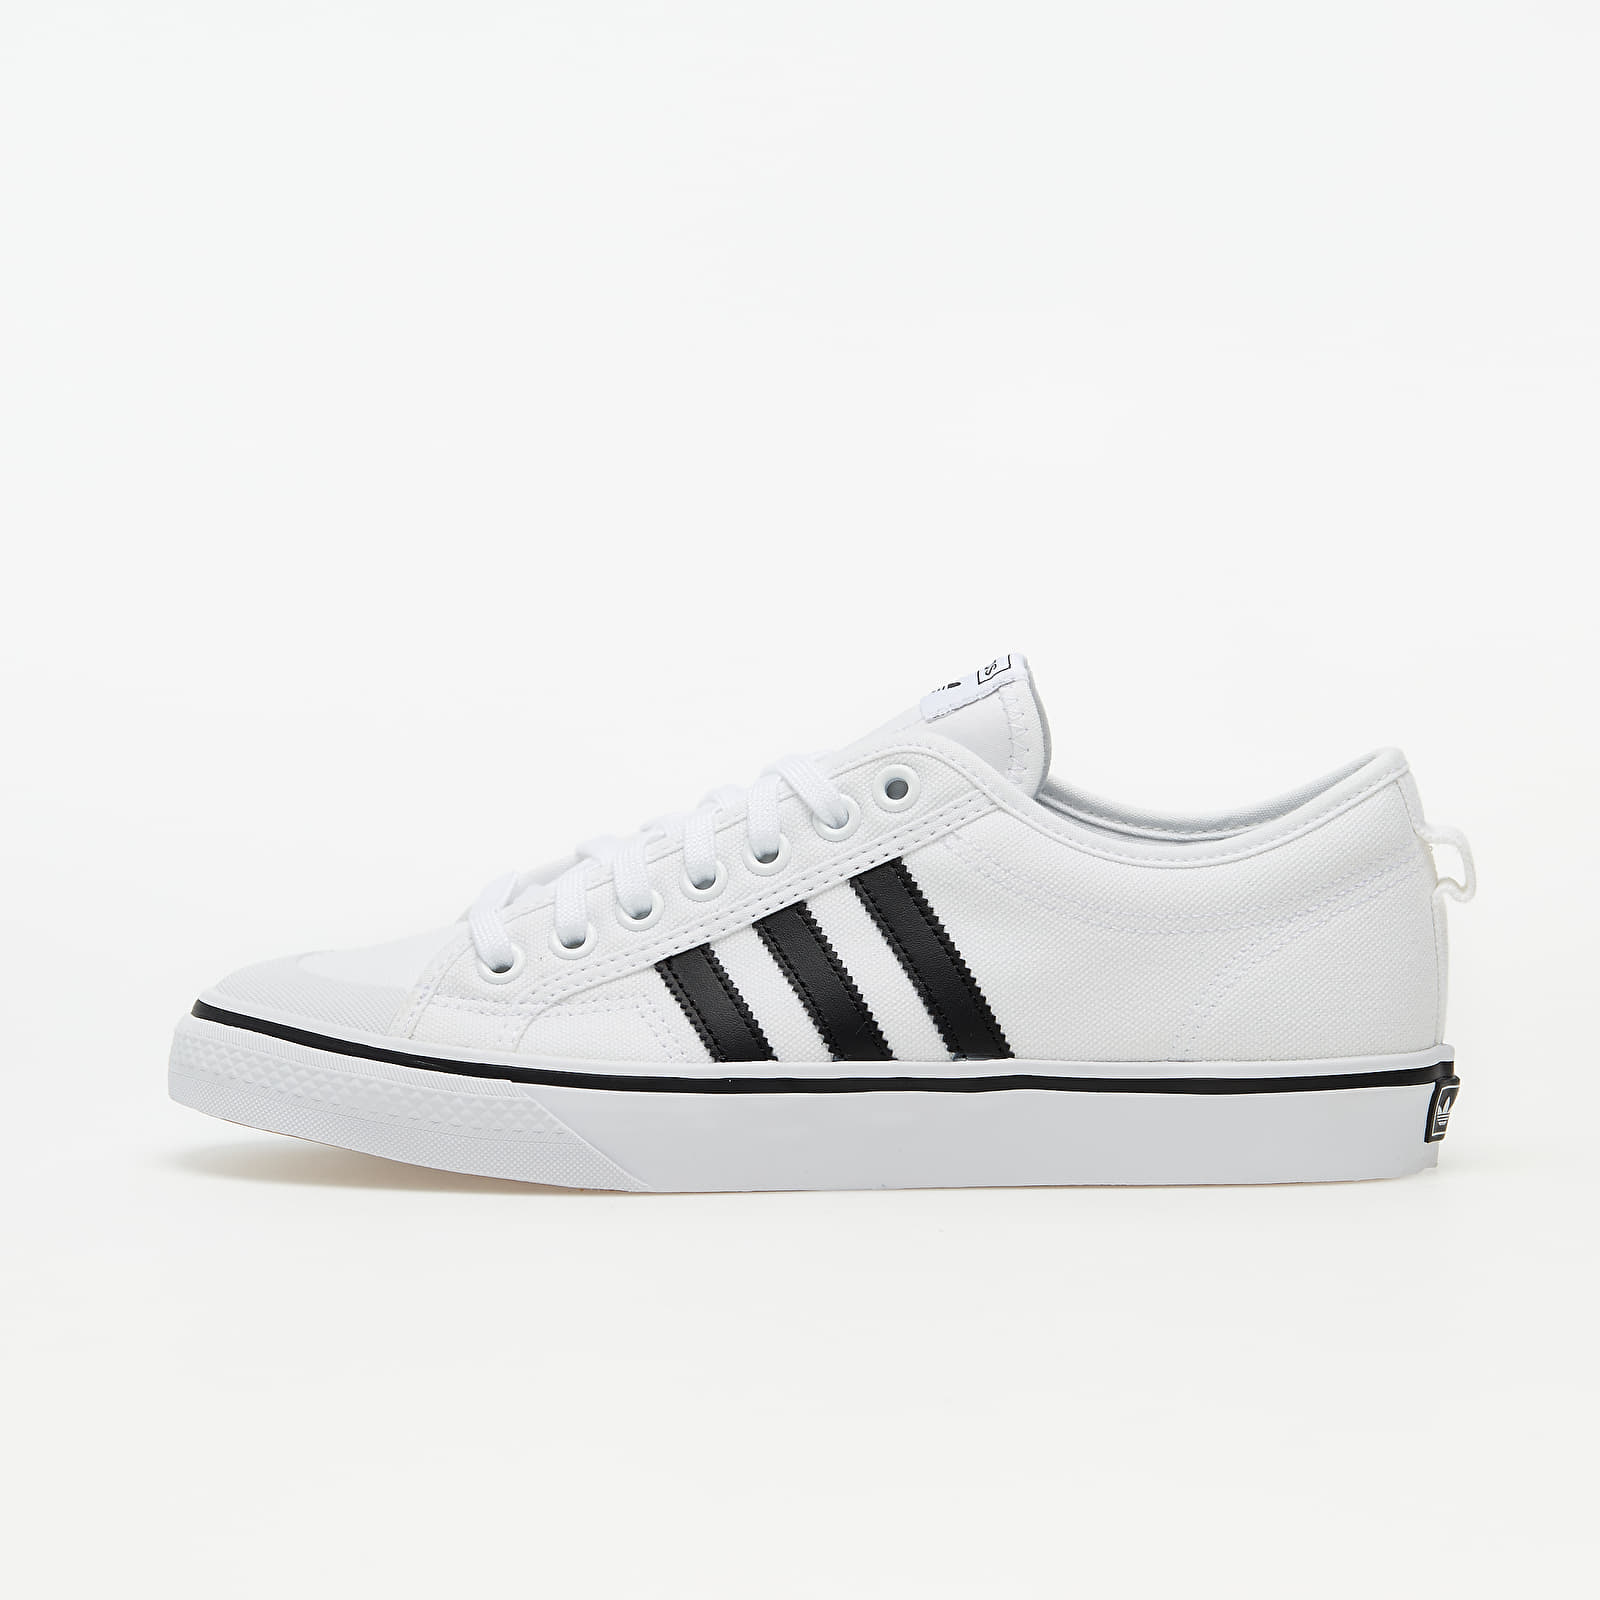 Ανδρικά παπούτσια adidas Nizza Ftw White/ Core Black/ Ftw White